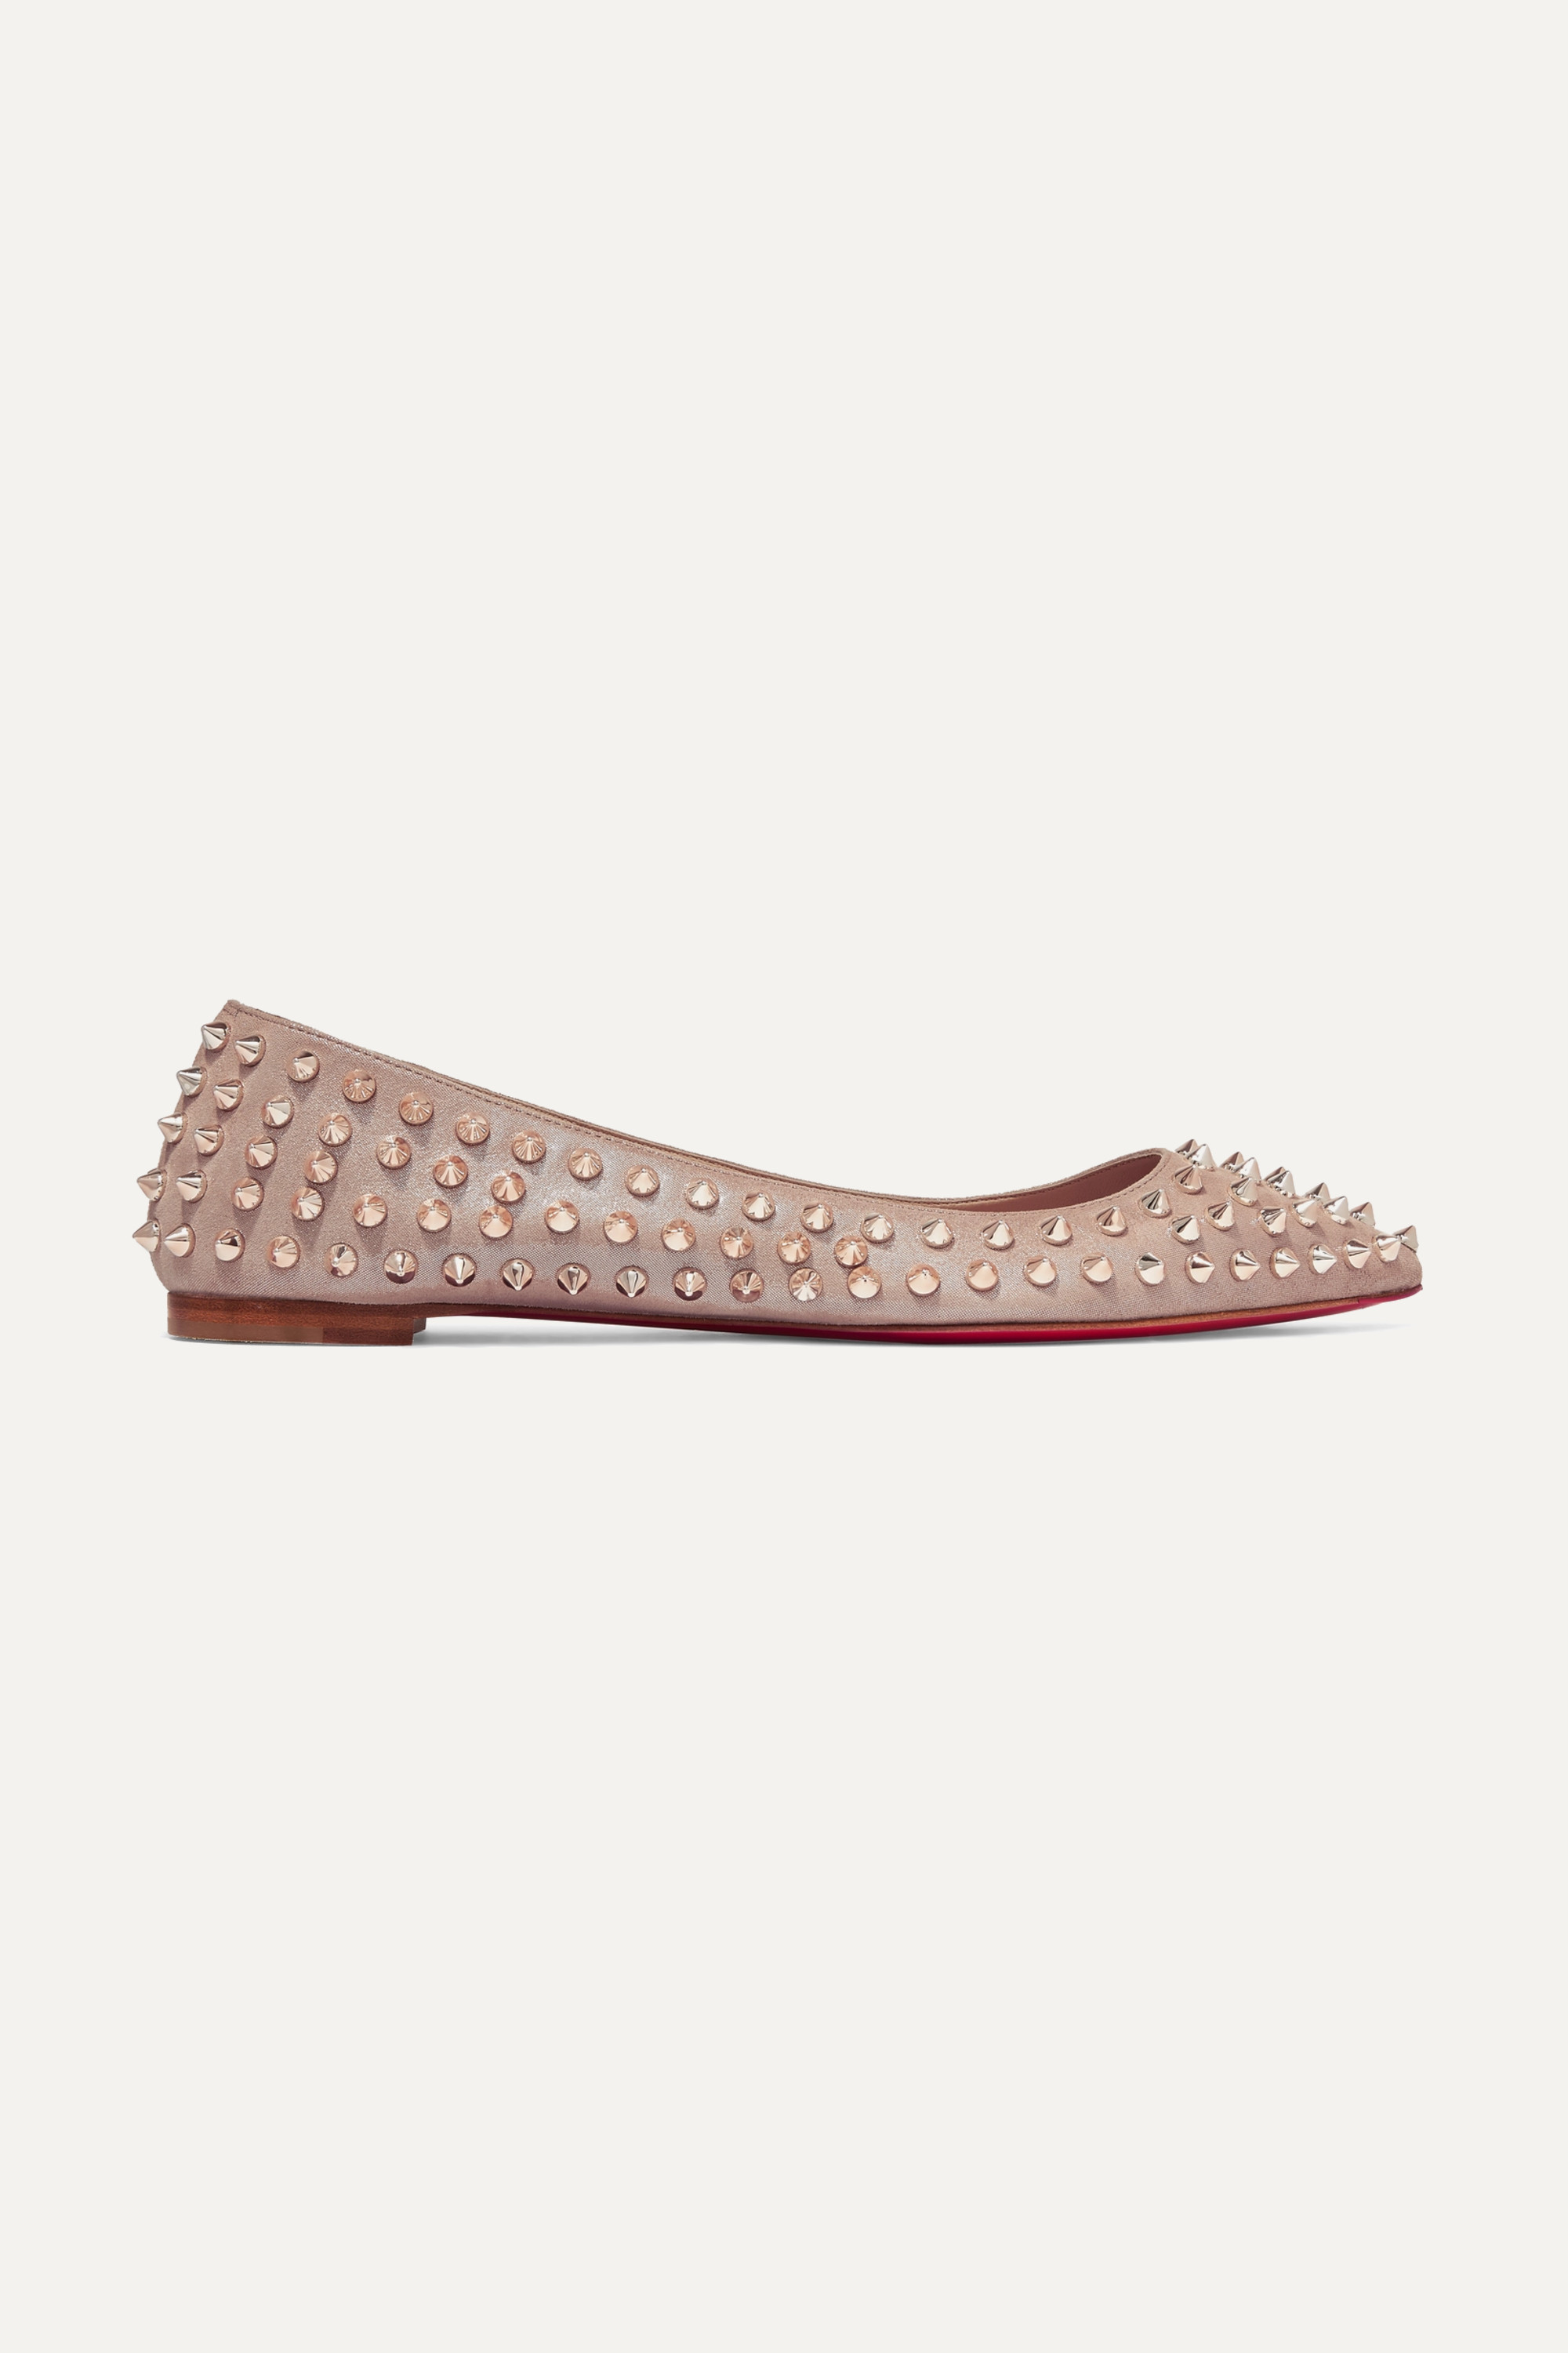 Pastel pink Ballalla spiked leather